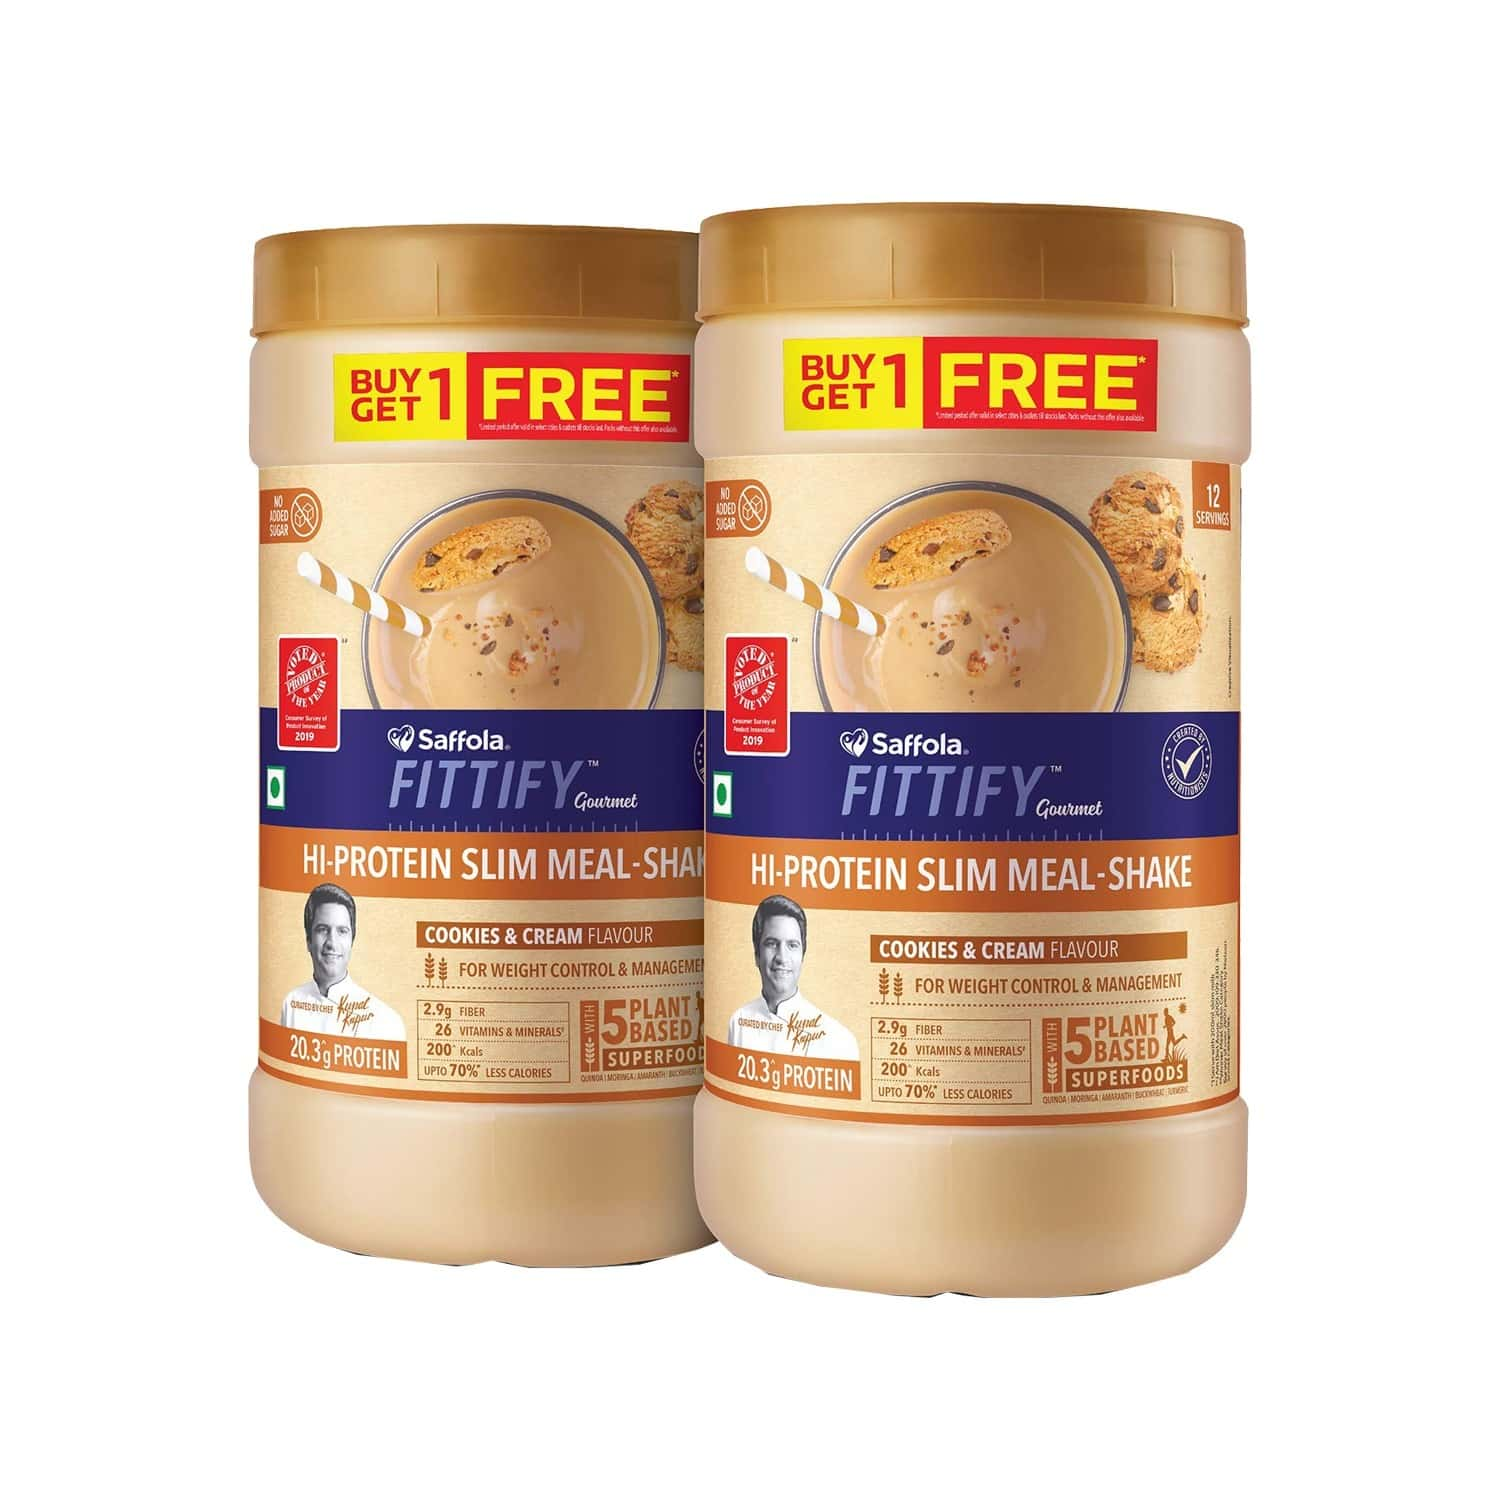 Saffola Fittify Hi-protein Slim Meal Shake, Cookies & Cream, Buy 1 Get 1, Each Pack 420 Gm